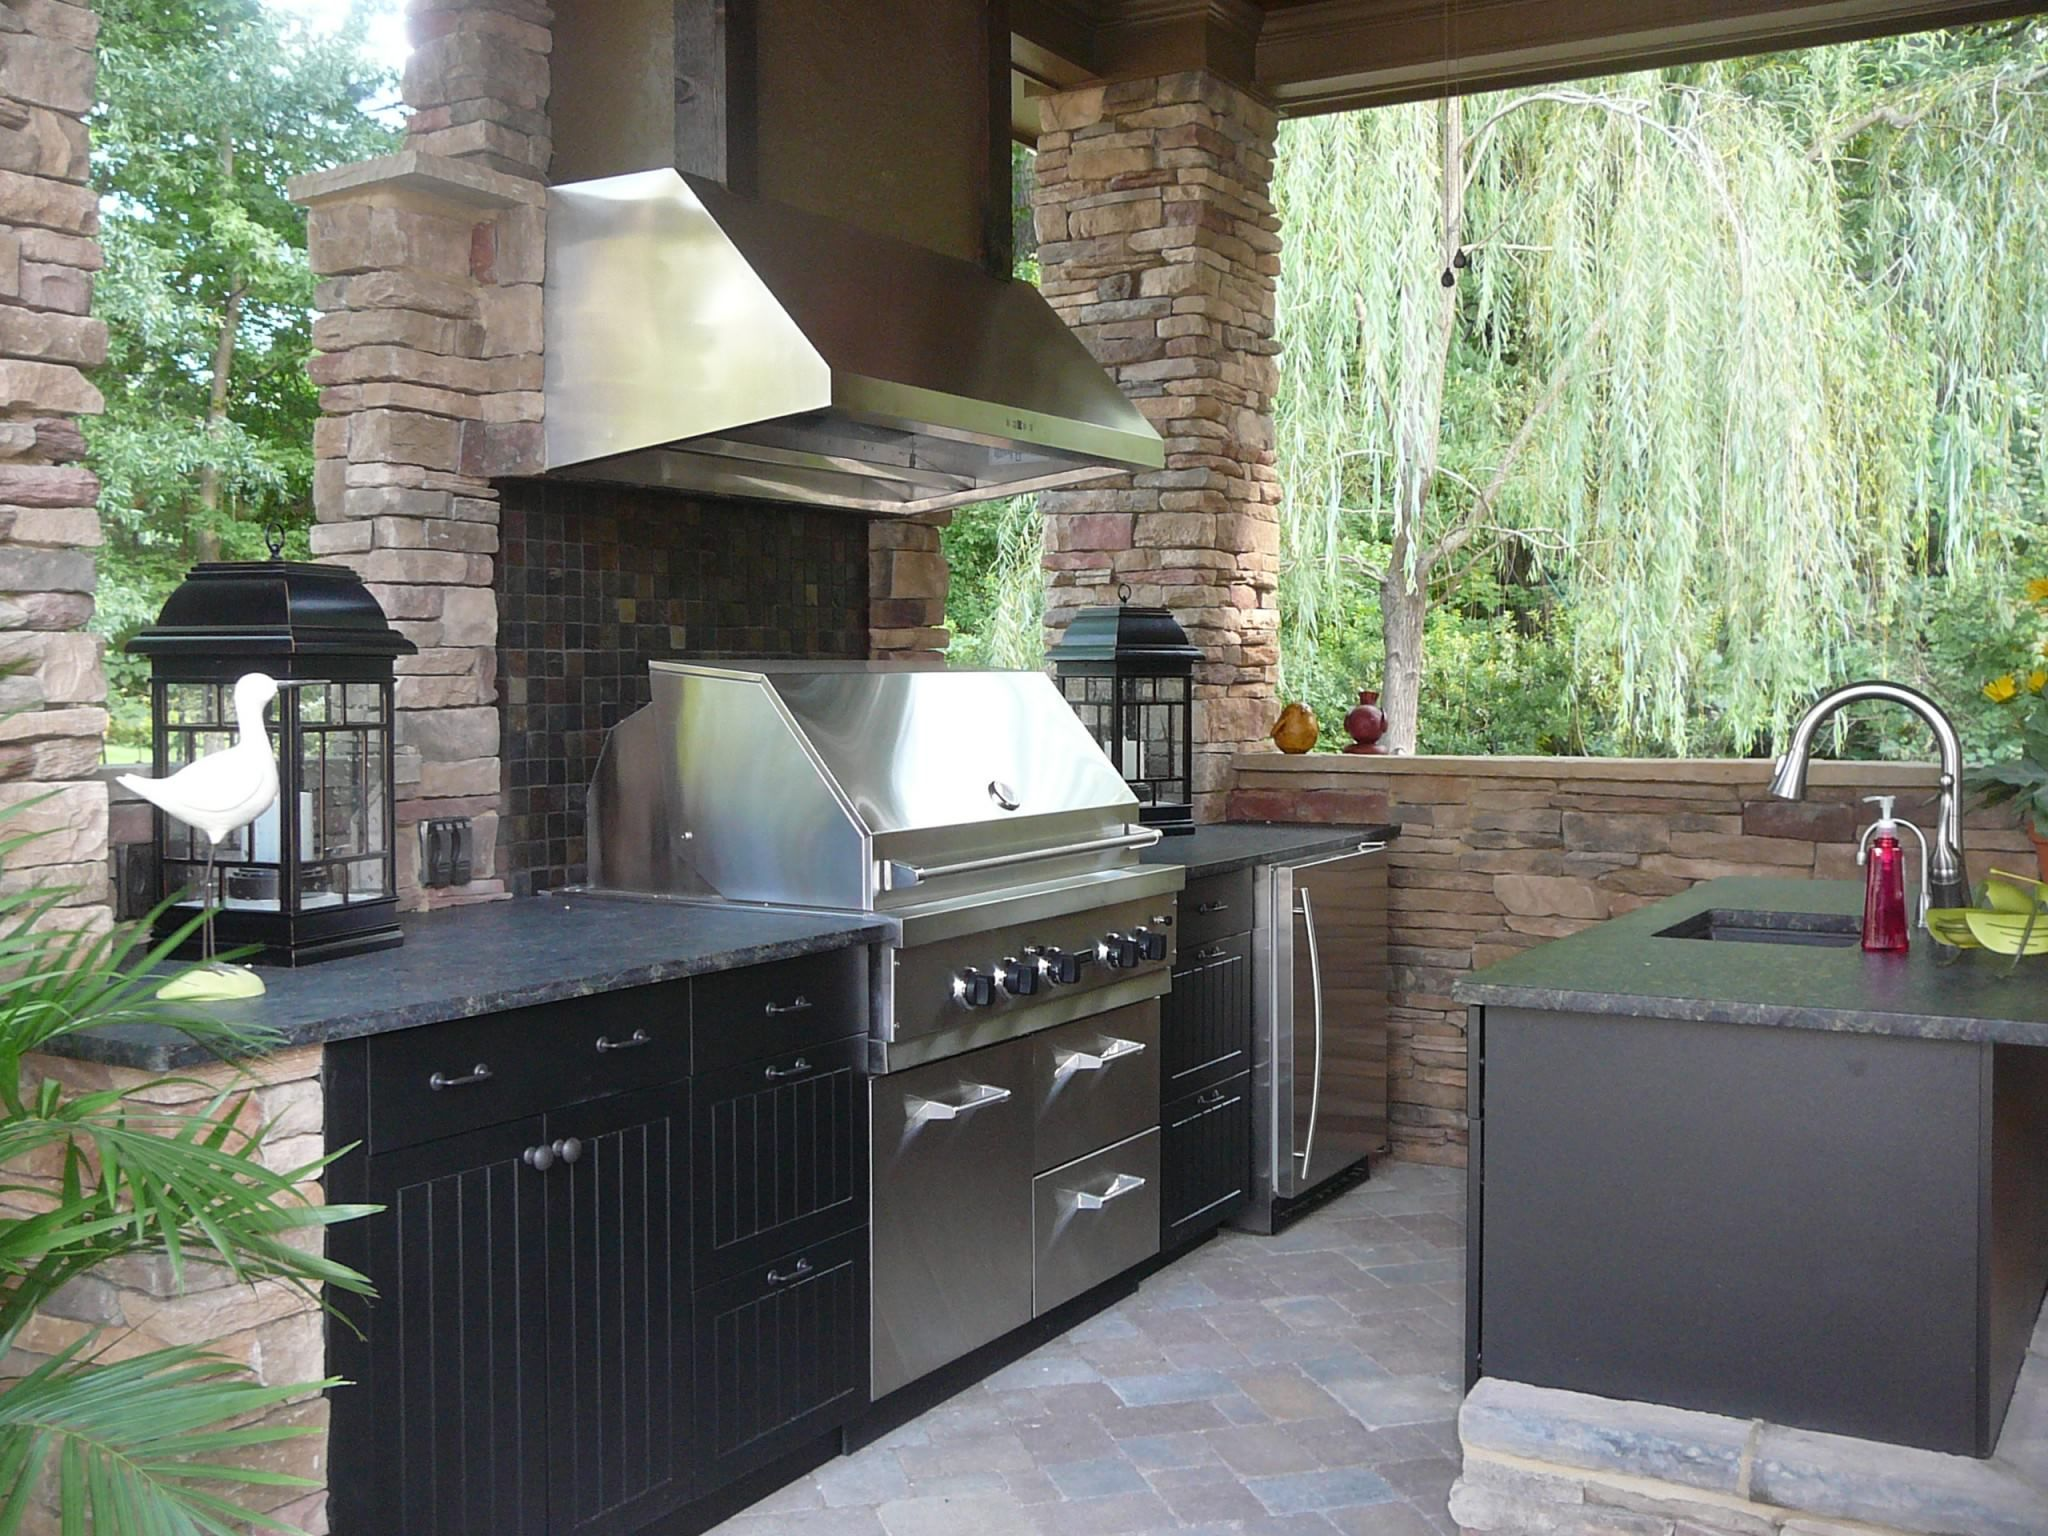 Modular Polymer Cabinets For Outdoors Outdoor Kitchen Plans Outdoor Kitchen Cabinets Modular Outdoor Kitchens